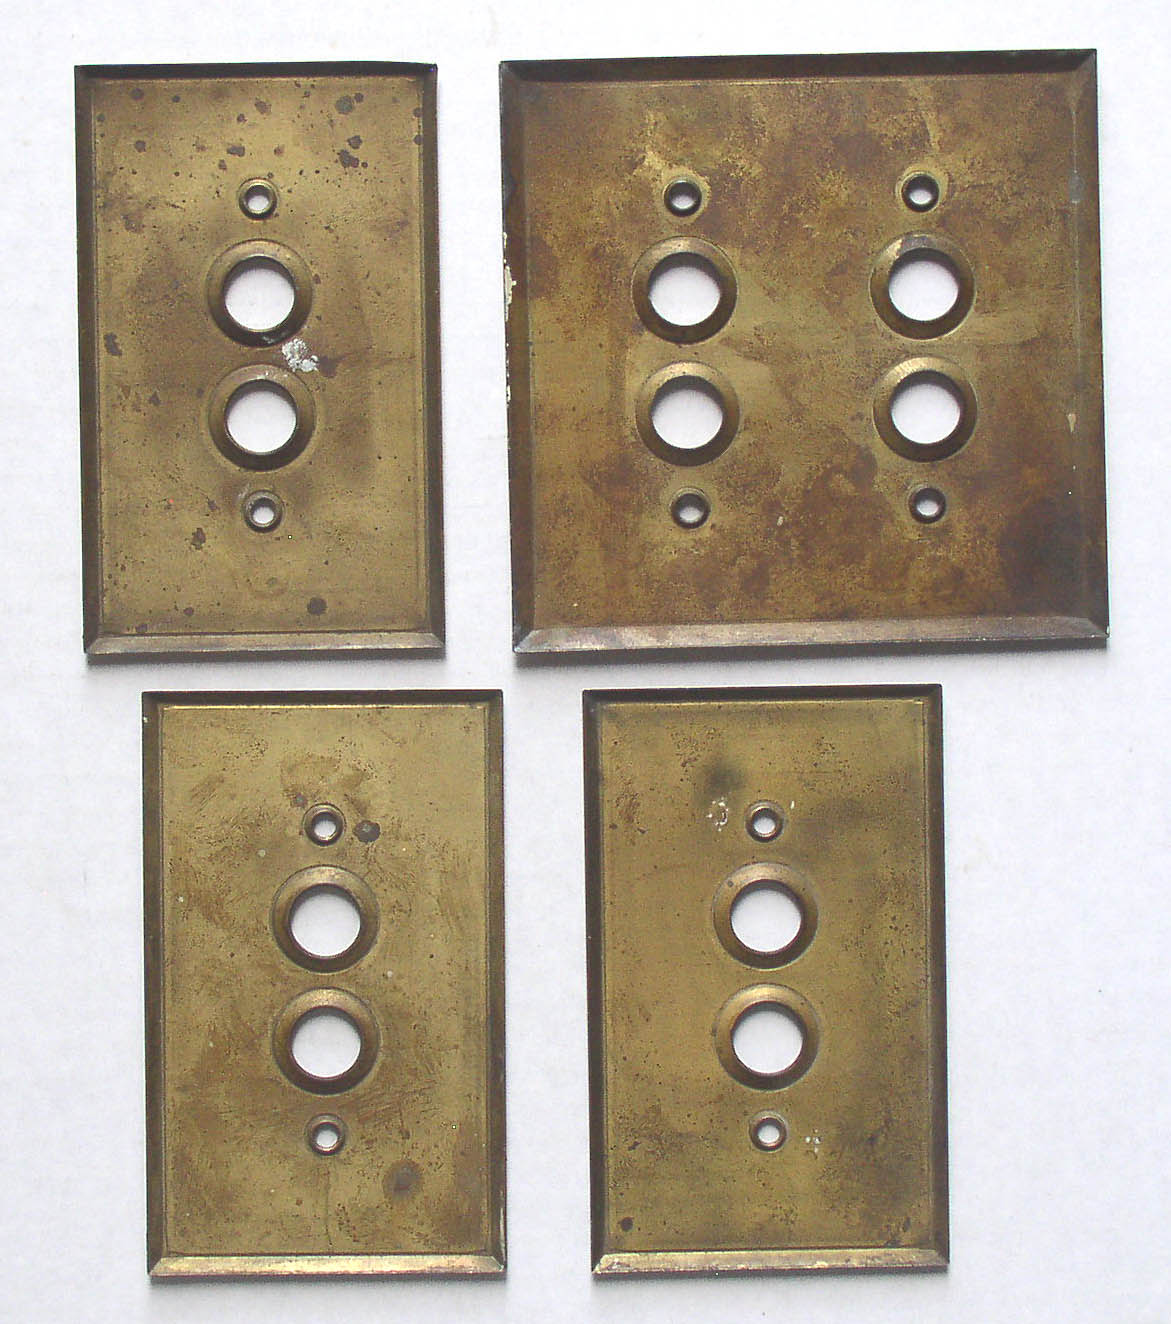 Brass Light Switch Covers Beauteous 4 Antique Brass Push Button Switch Plates Covers  Thingery Design Decoration